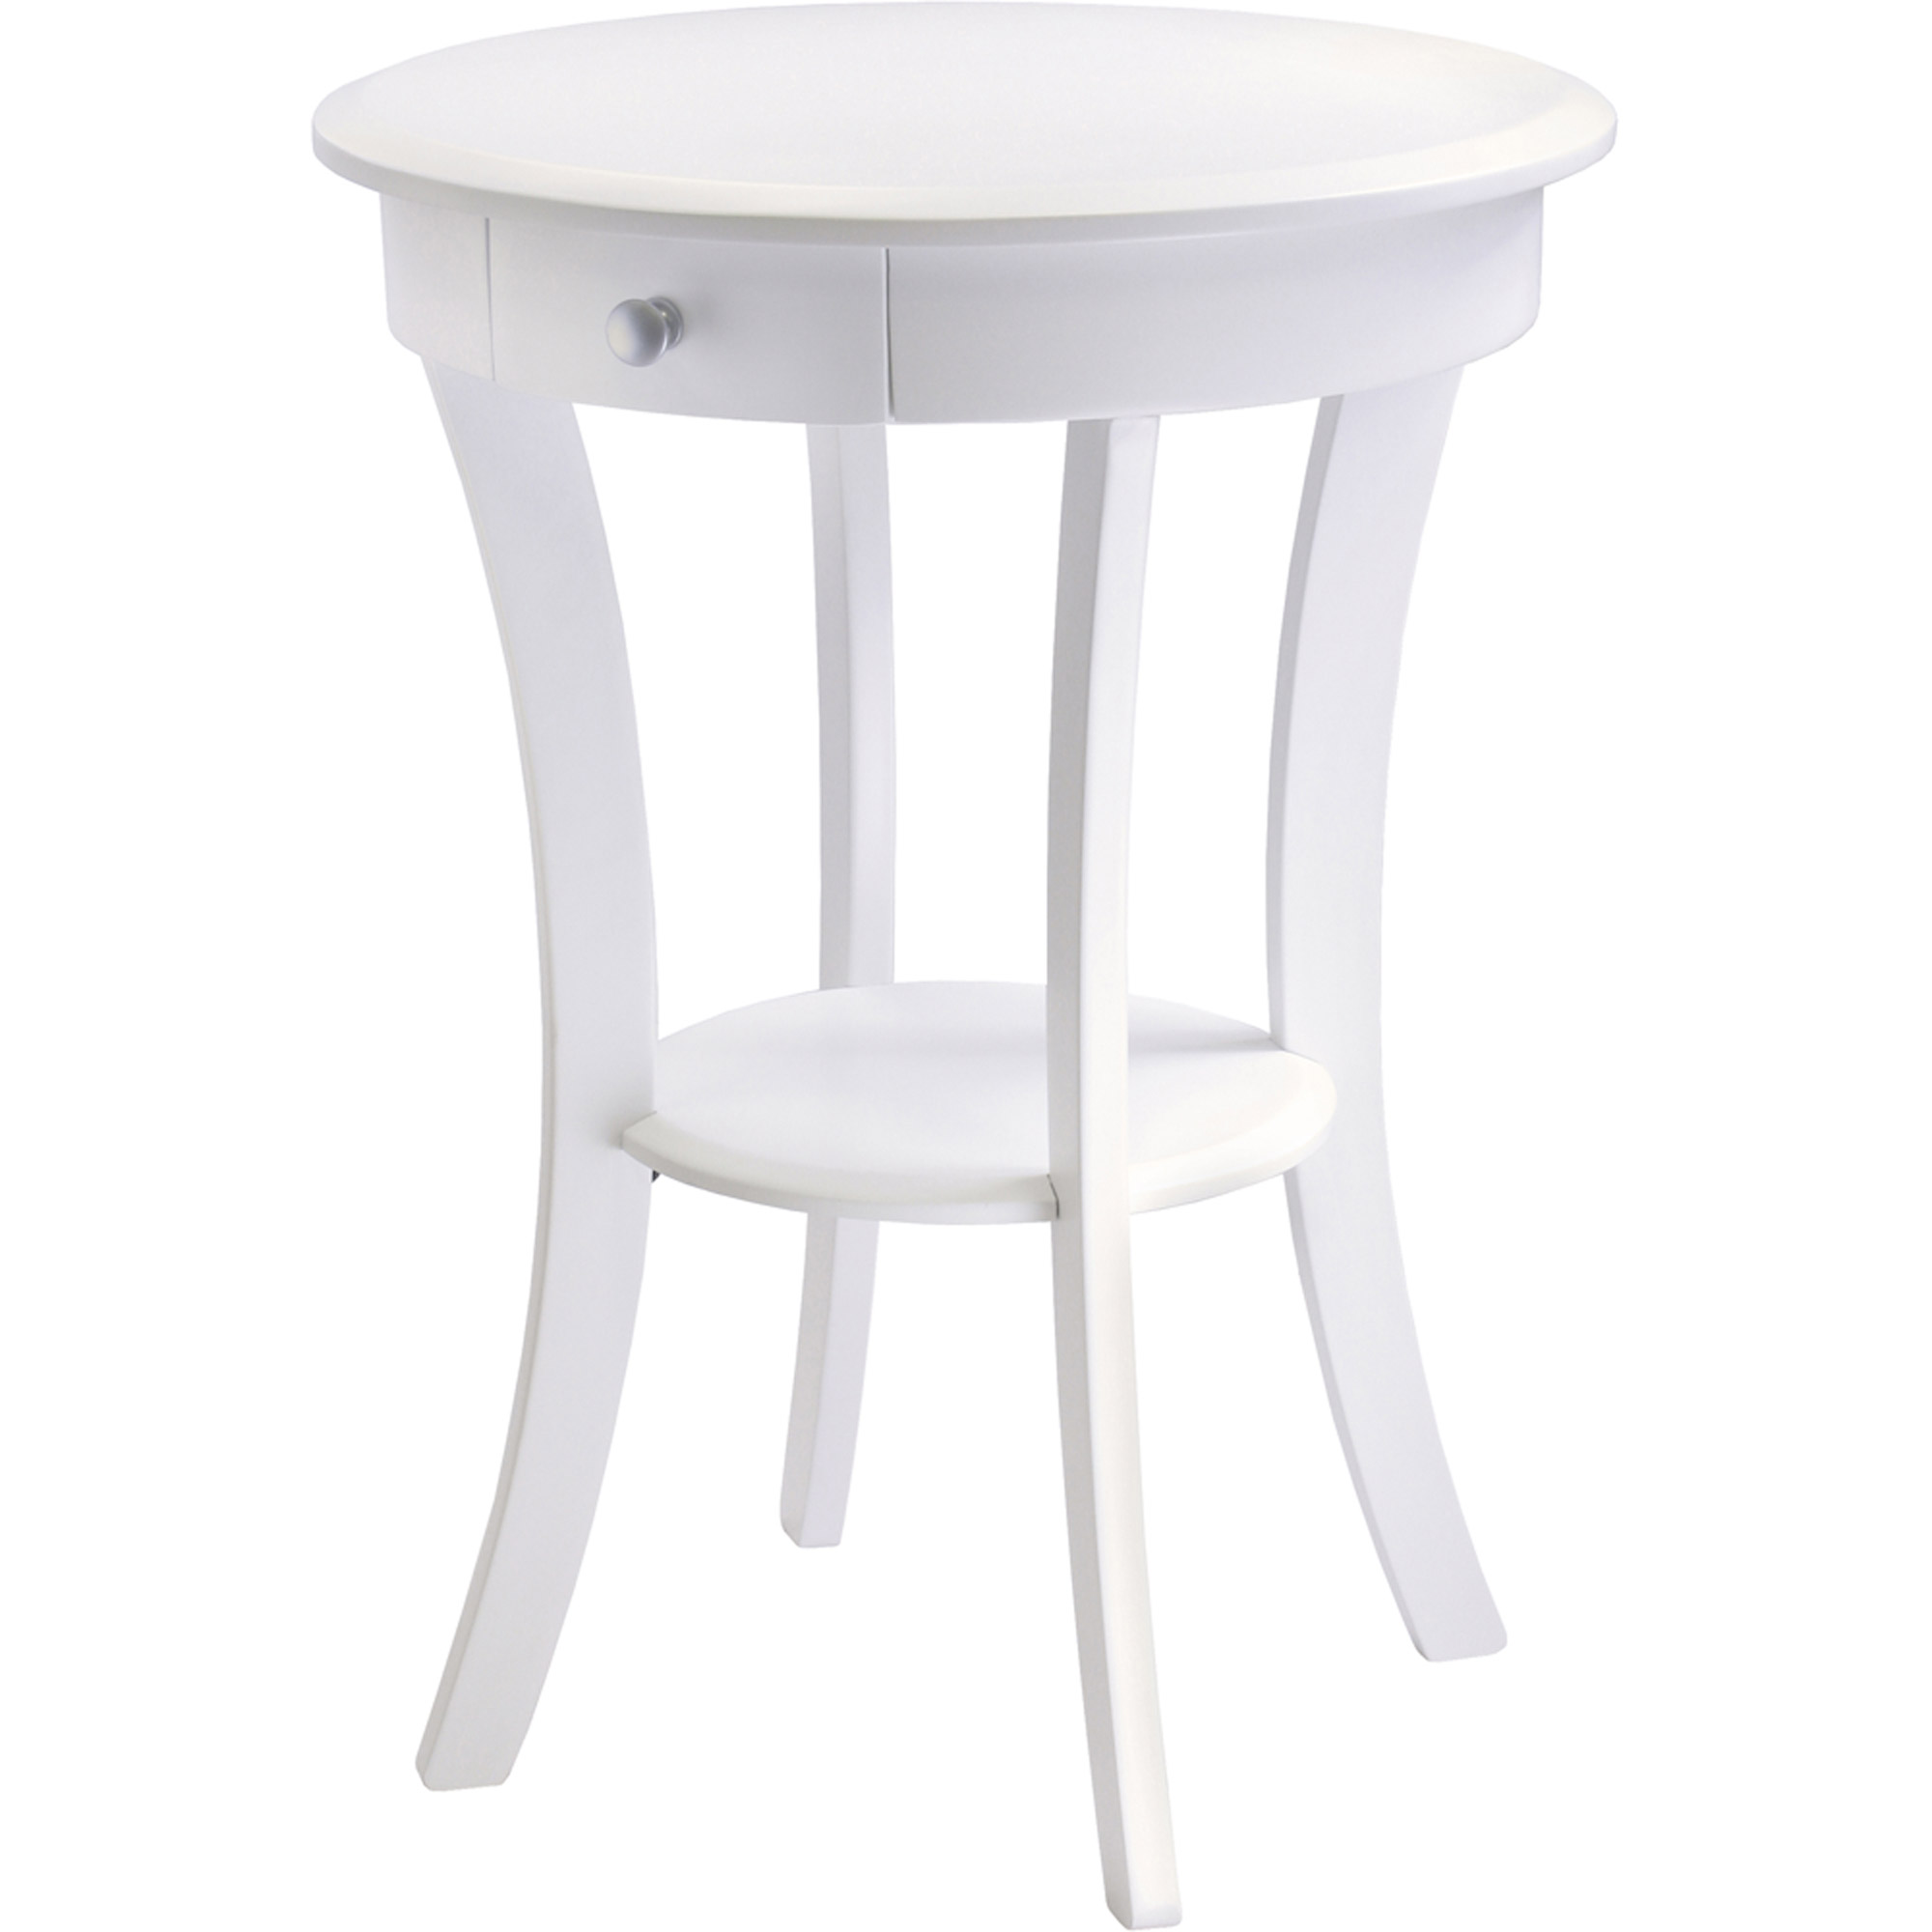 sasha round accent table large white astoria dining lamps without cords glass top coffee with wrought iron legs chalk paint decorative chests cabinets west elm elephant lamp sofa